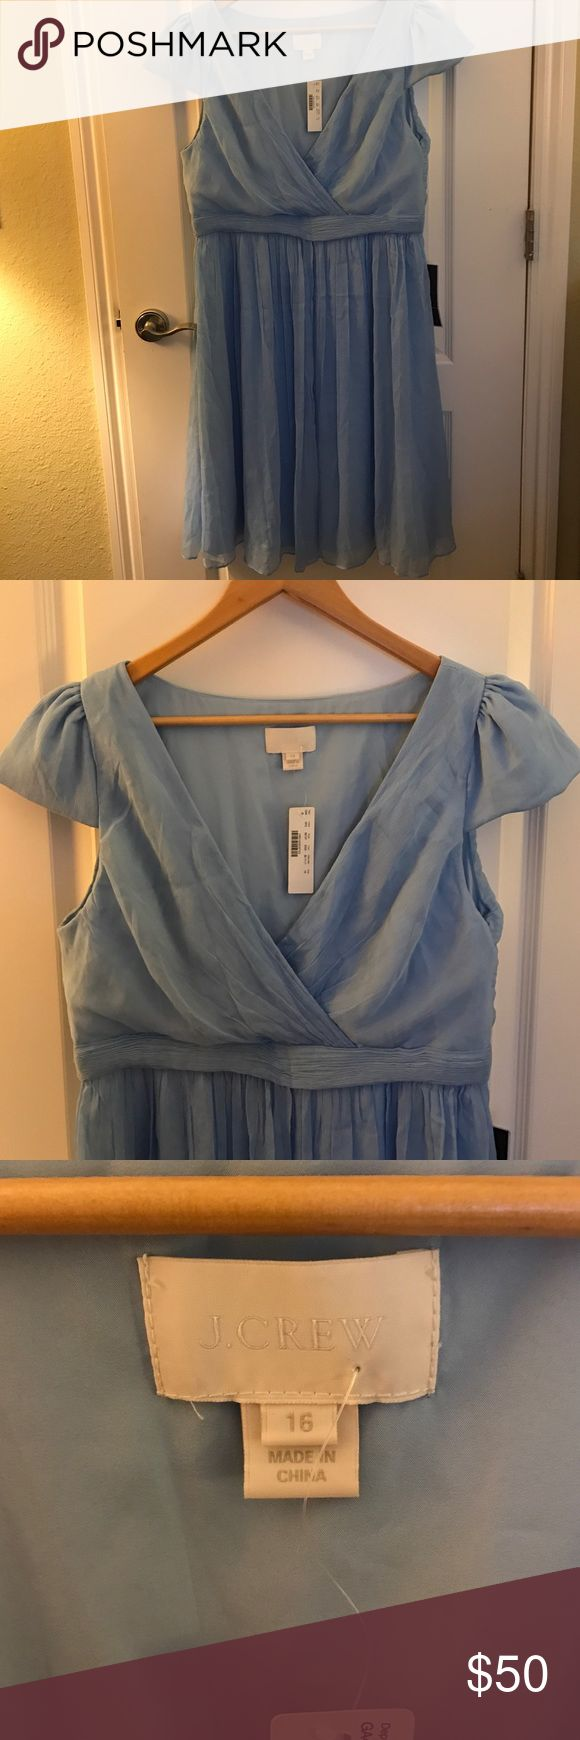 J. Crew bridesmaid dress-16 Beautiful crepe wedding dress-new with tags. Never worn. Purchased for a wedding that did not happen. Pleated skirt hits just below the knee. Slightly wrinkled due to storage, but just needs a good steaming. J. Crew Dresses Wedding